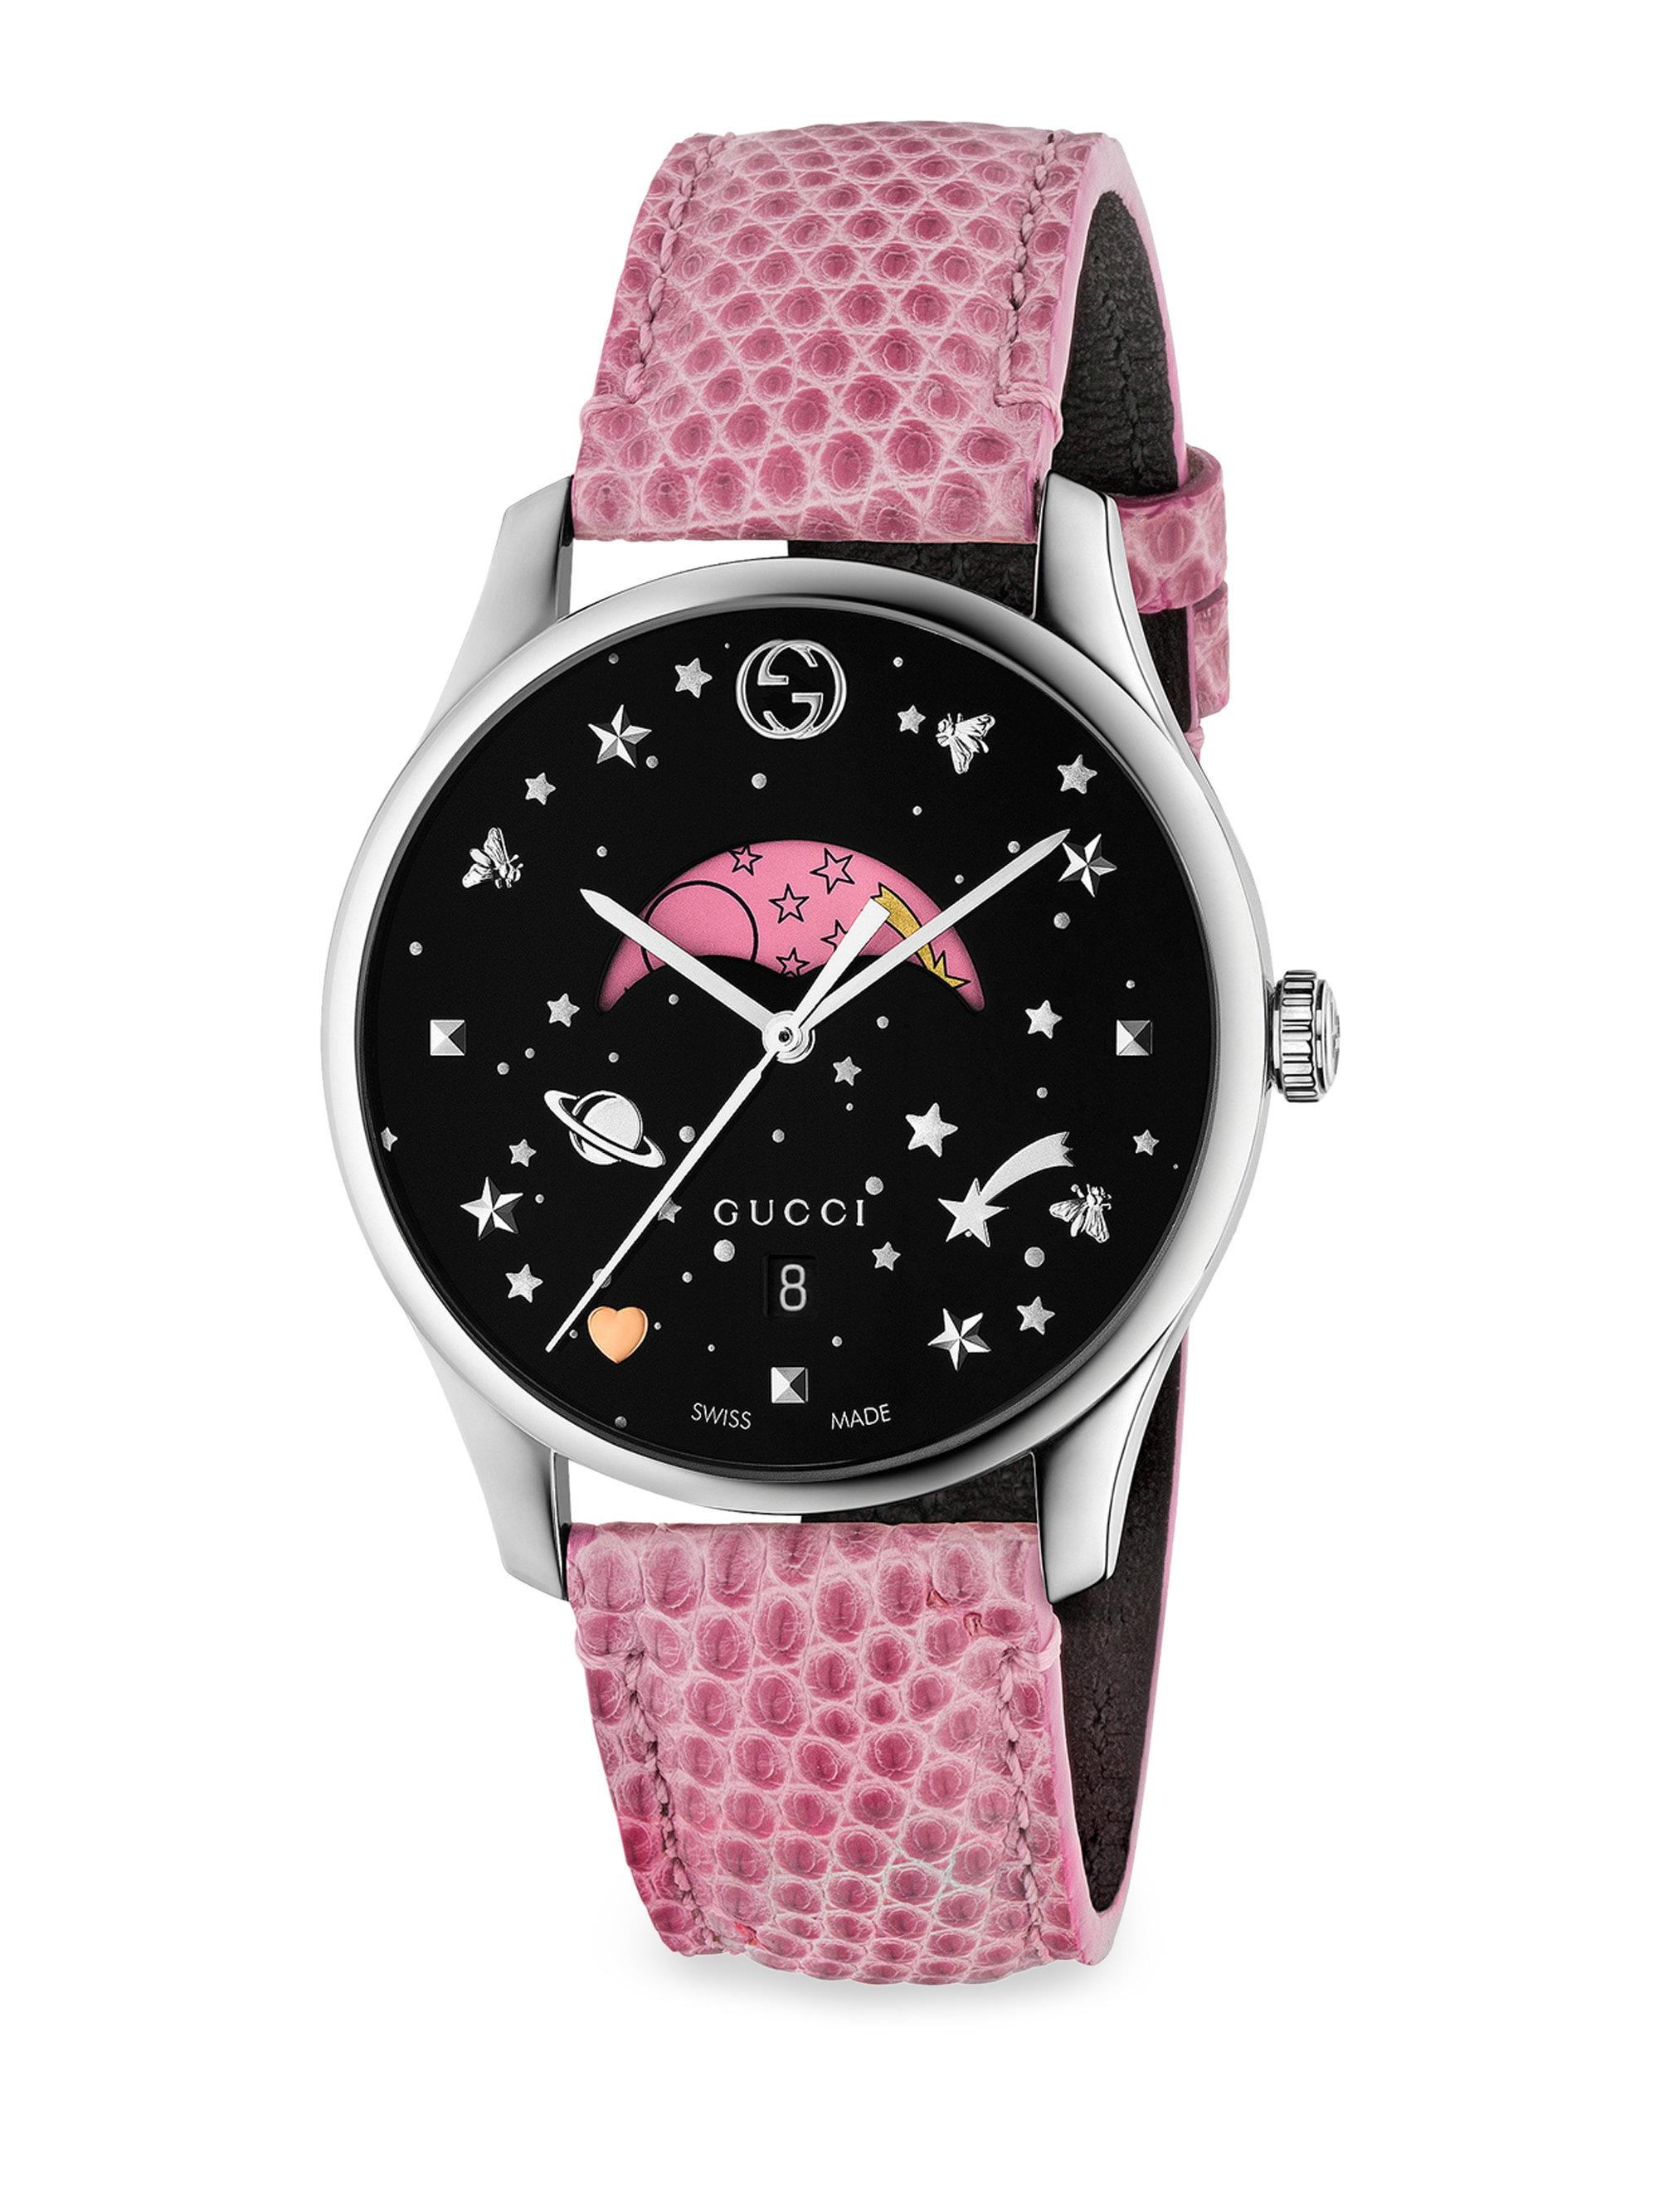 3769a37ff6f Lyst - Gucci G-timeless Pink Moonphase Lizard Strap Watch in Metallic